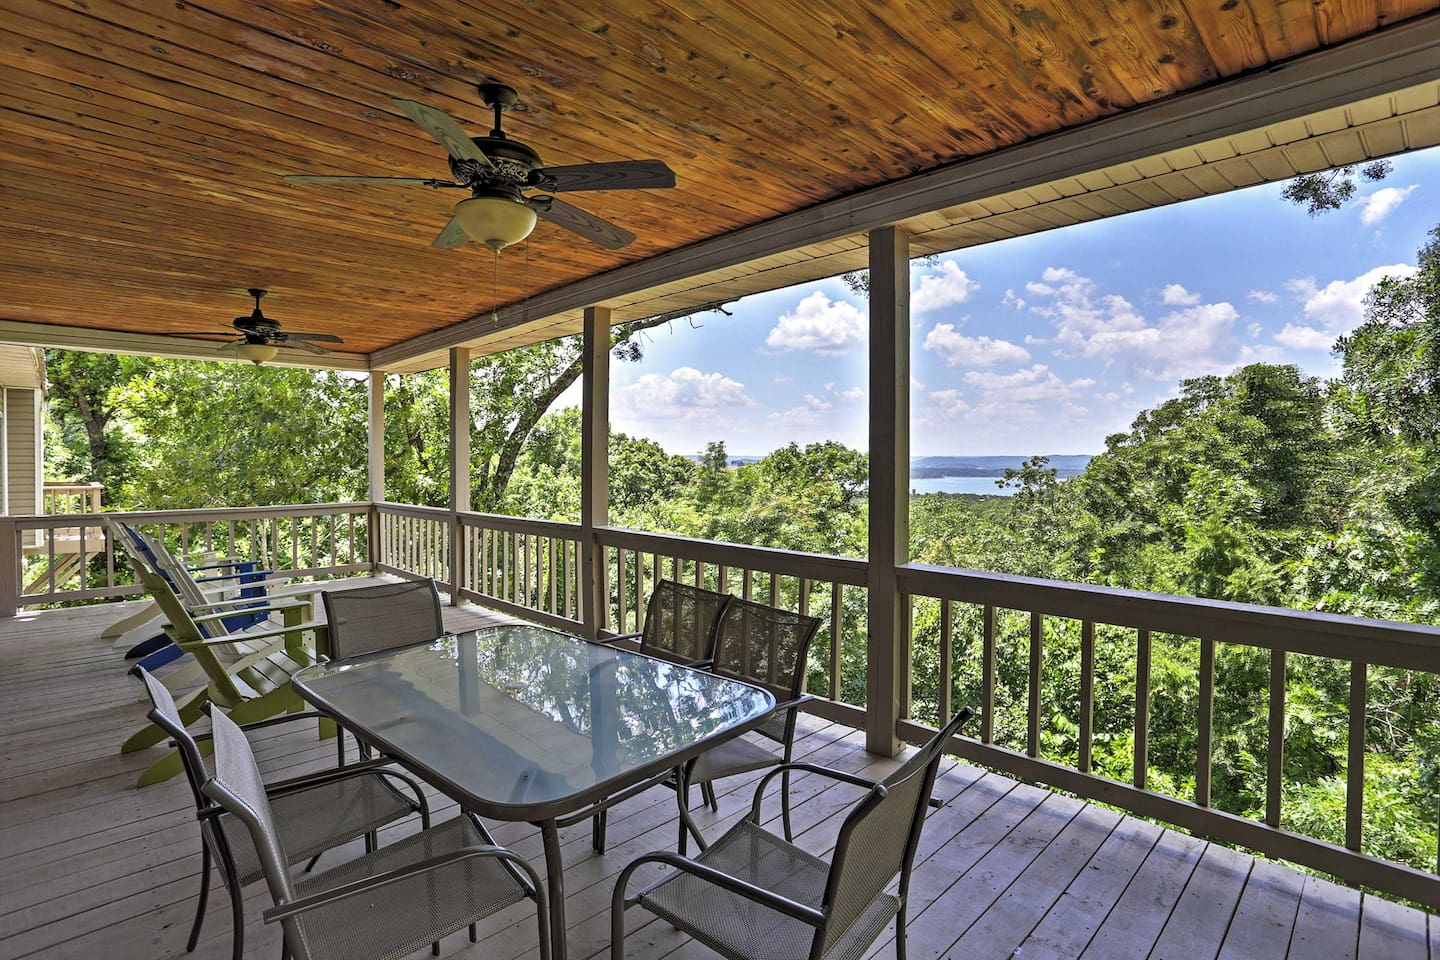 Look forward to mountain and lake views from this elevated deck when you stay at this 4-bedroom, 3.5-bath vacation rental home in Branson!